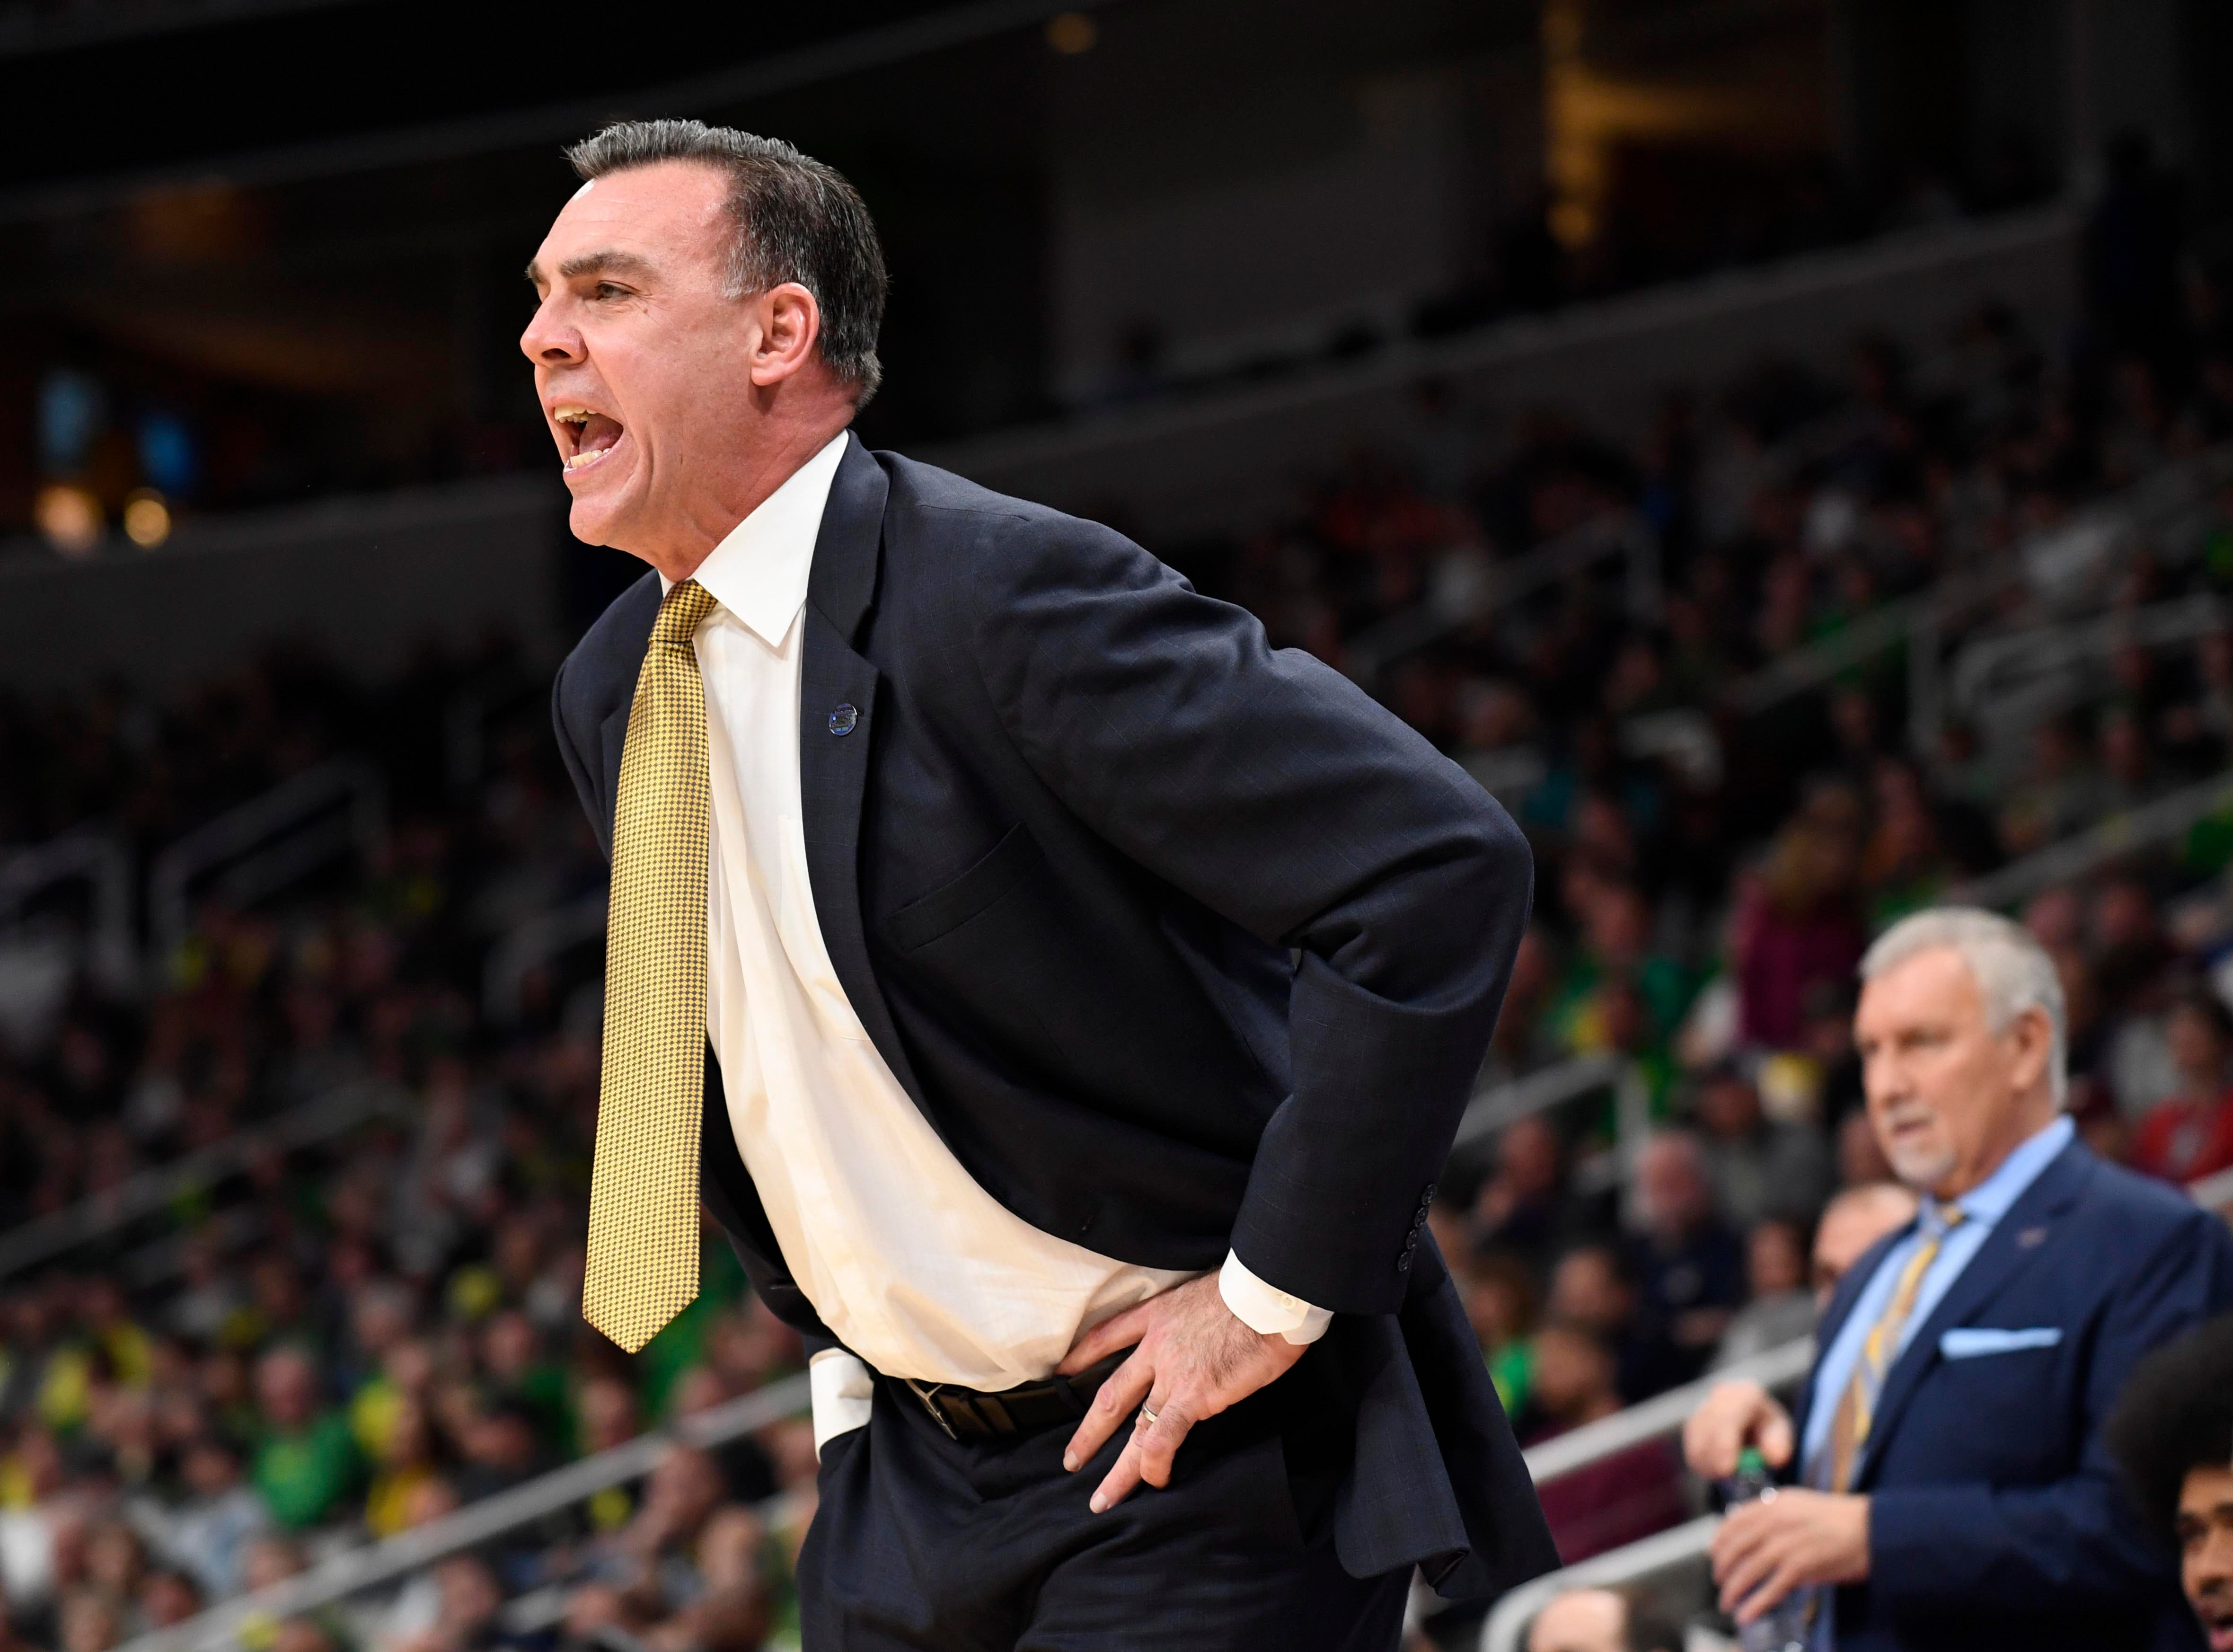 Opinion: In taunting Oregon player, UC Irvine coach demeaned gays, women and his school